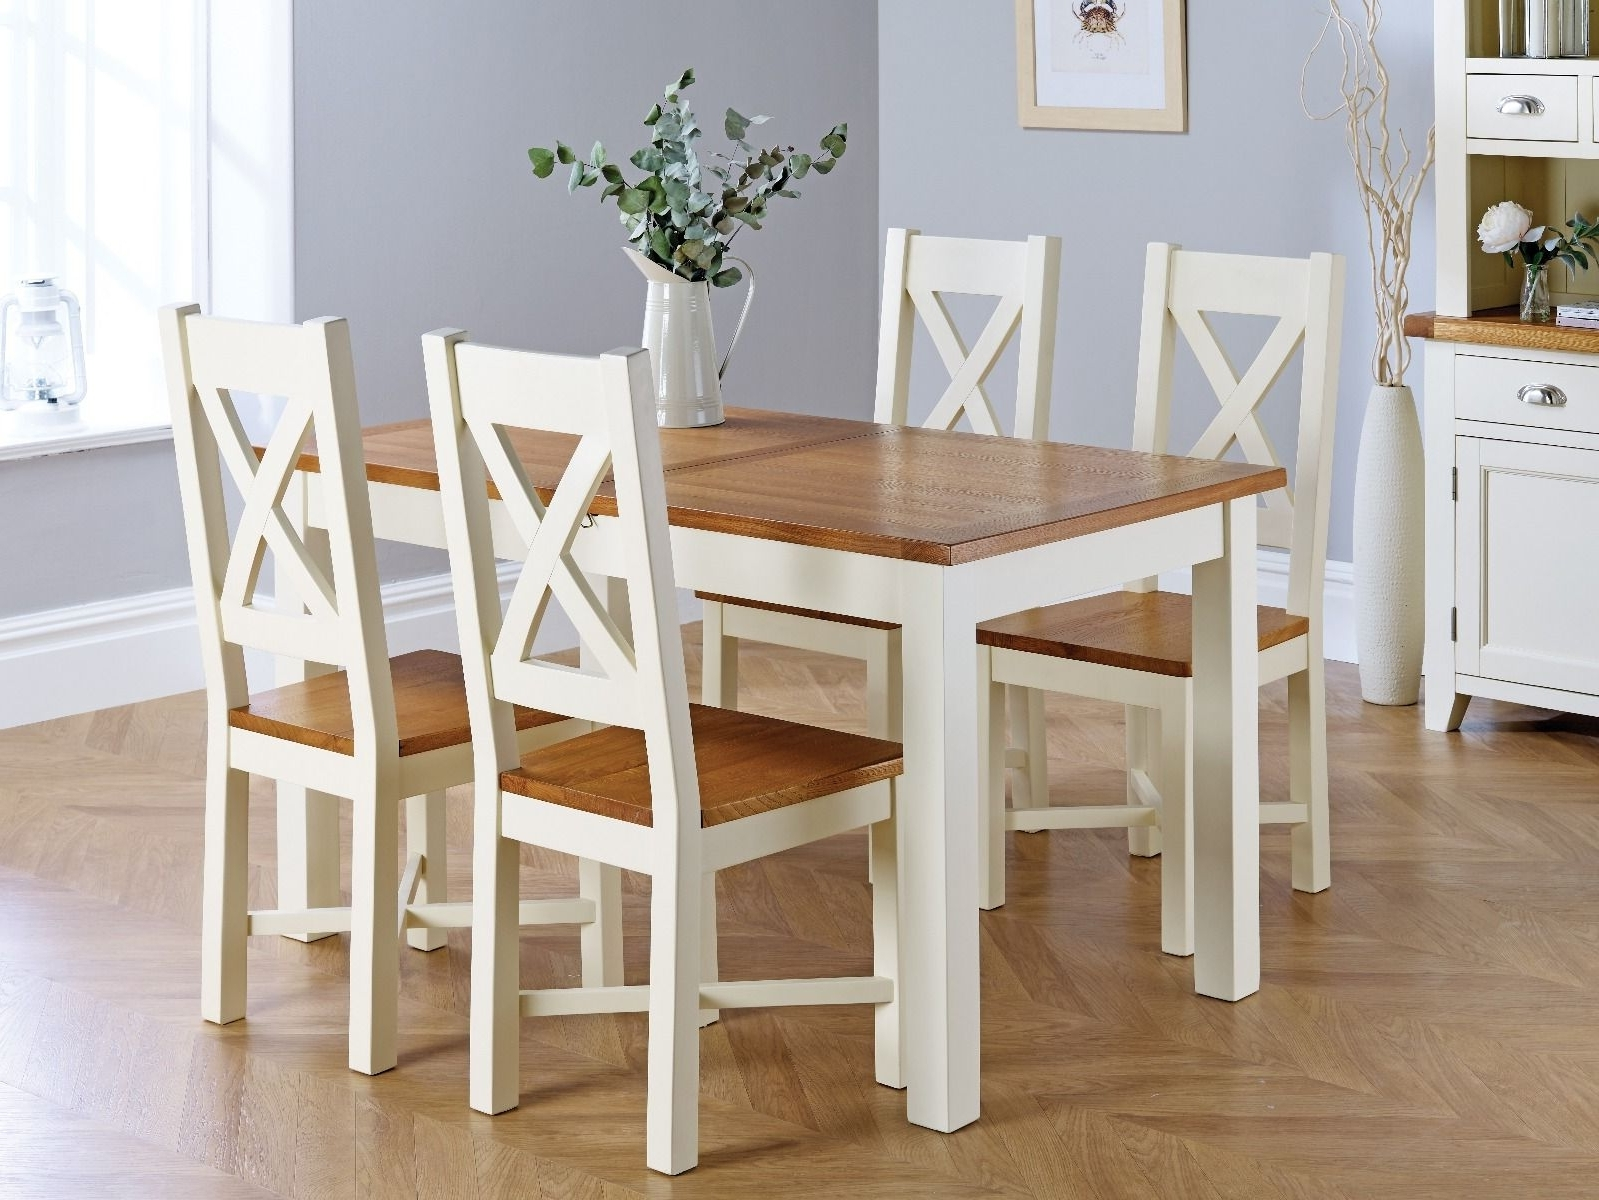 Country Oak 180Cm Cream Painted Extending Dining Table & 4 Grasmere With Well Known Cream And Wood Dining Tables (View 8 of 25)